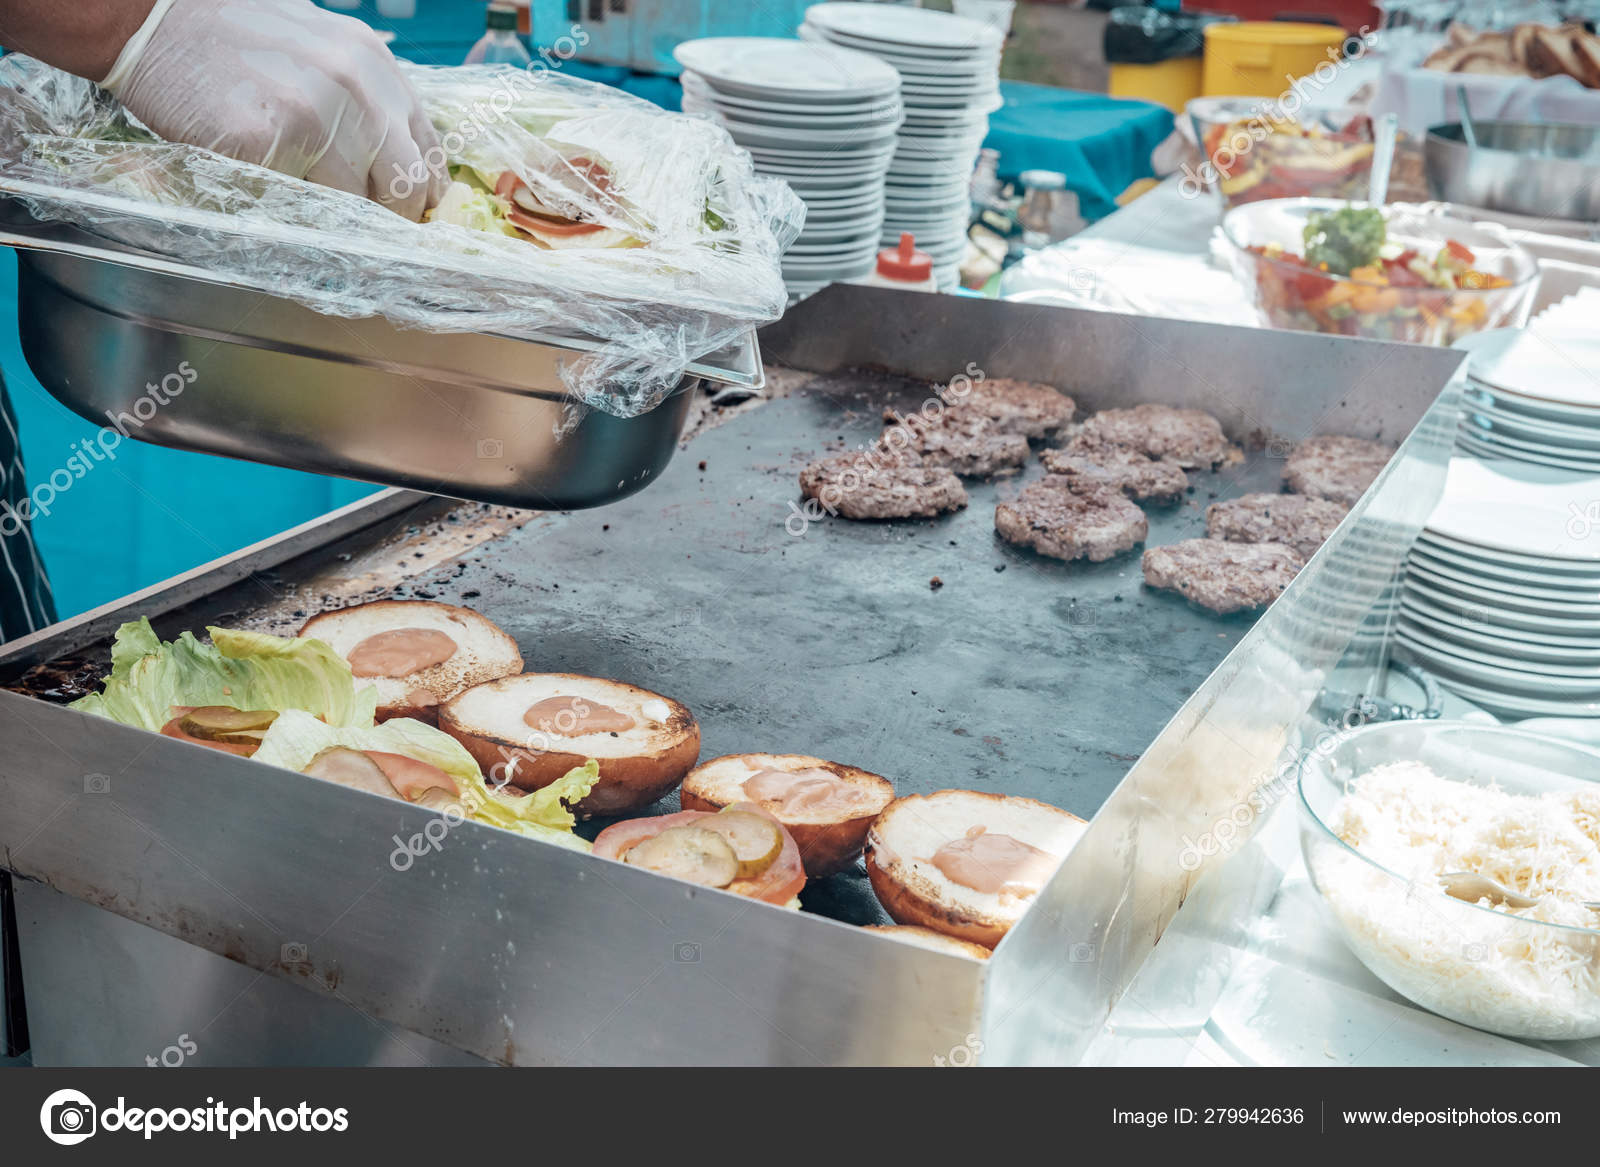 Catering For Birthday Party Wedding Event Grilling Meat Corn Burger Sausage Sunflower Vegetables Fruit Dishes Dessert Salads Pasta Sweets Stock Photo Image By C Edmond77 279942636